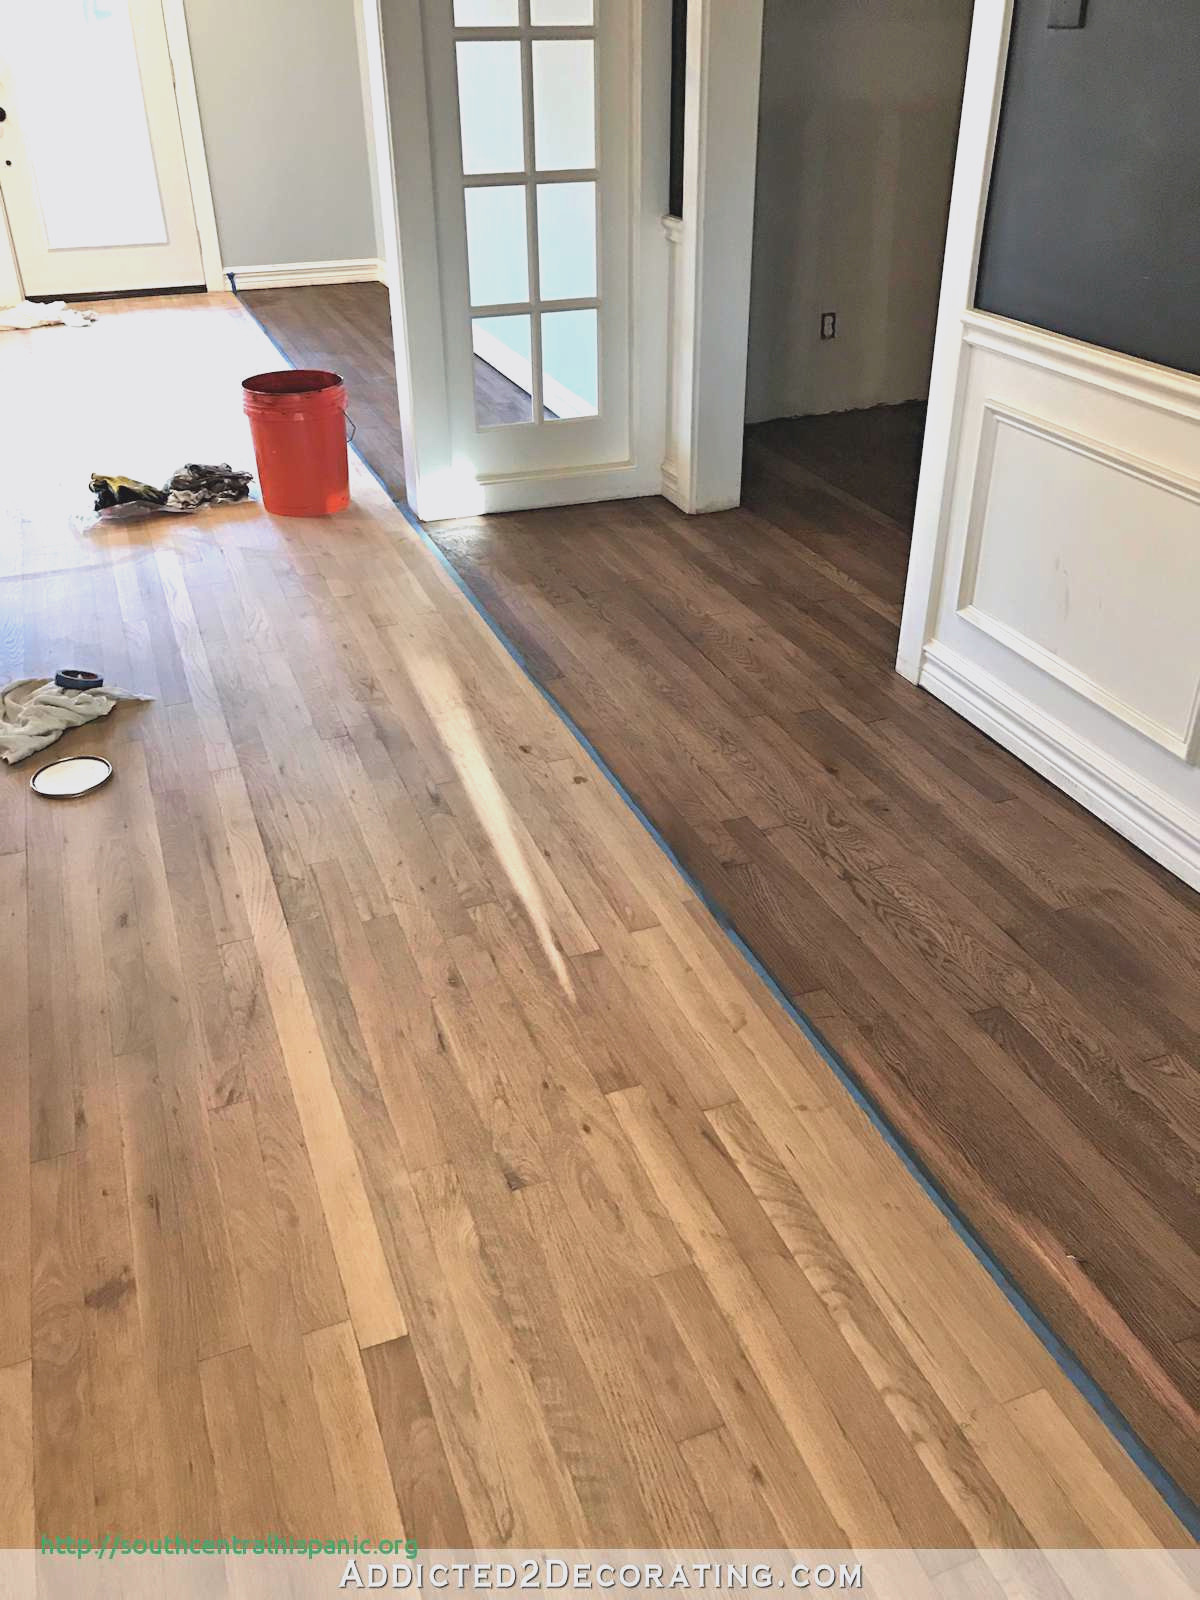 hh hardwood floors of best hardwood floors cost best home design cool to architecture within hardwood floors cost popular home design beautiful on architecture of best hardwood floors cost best home